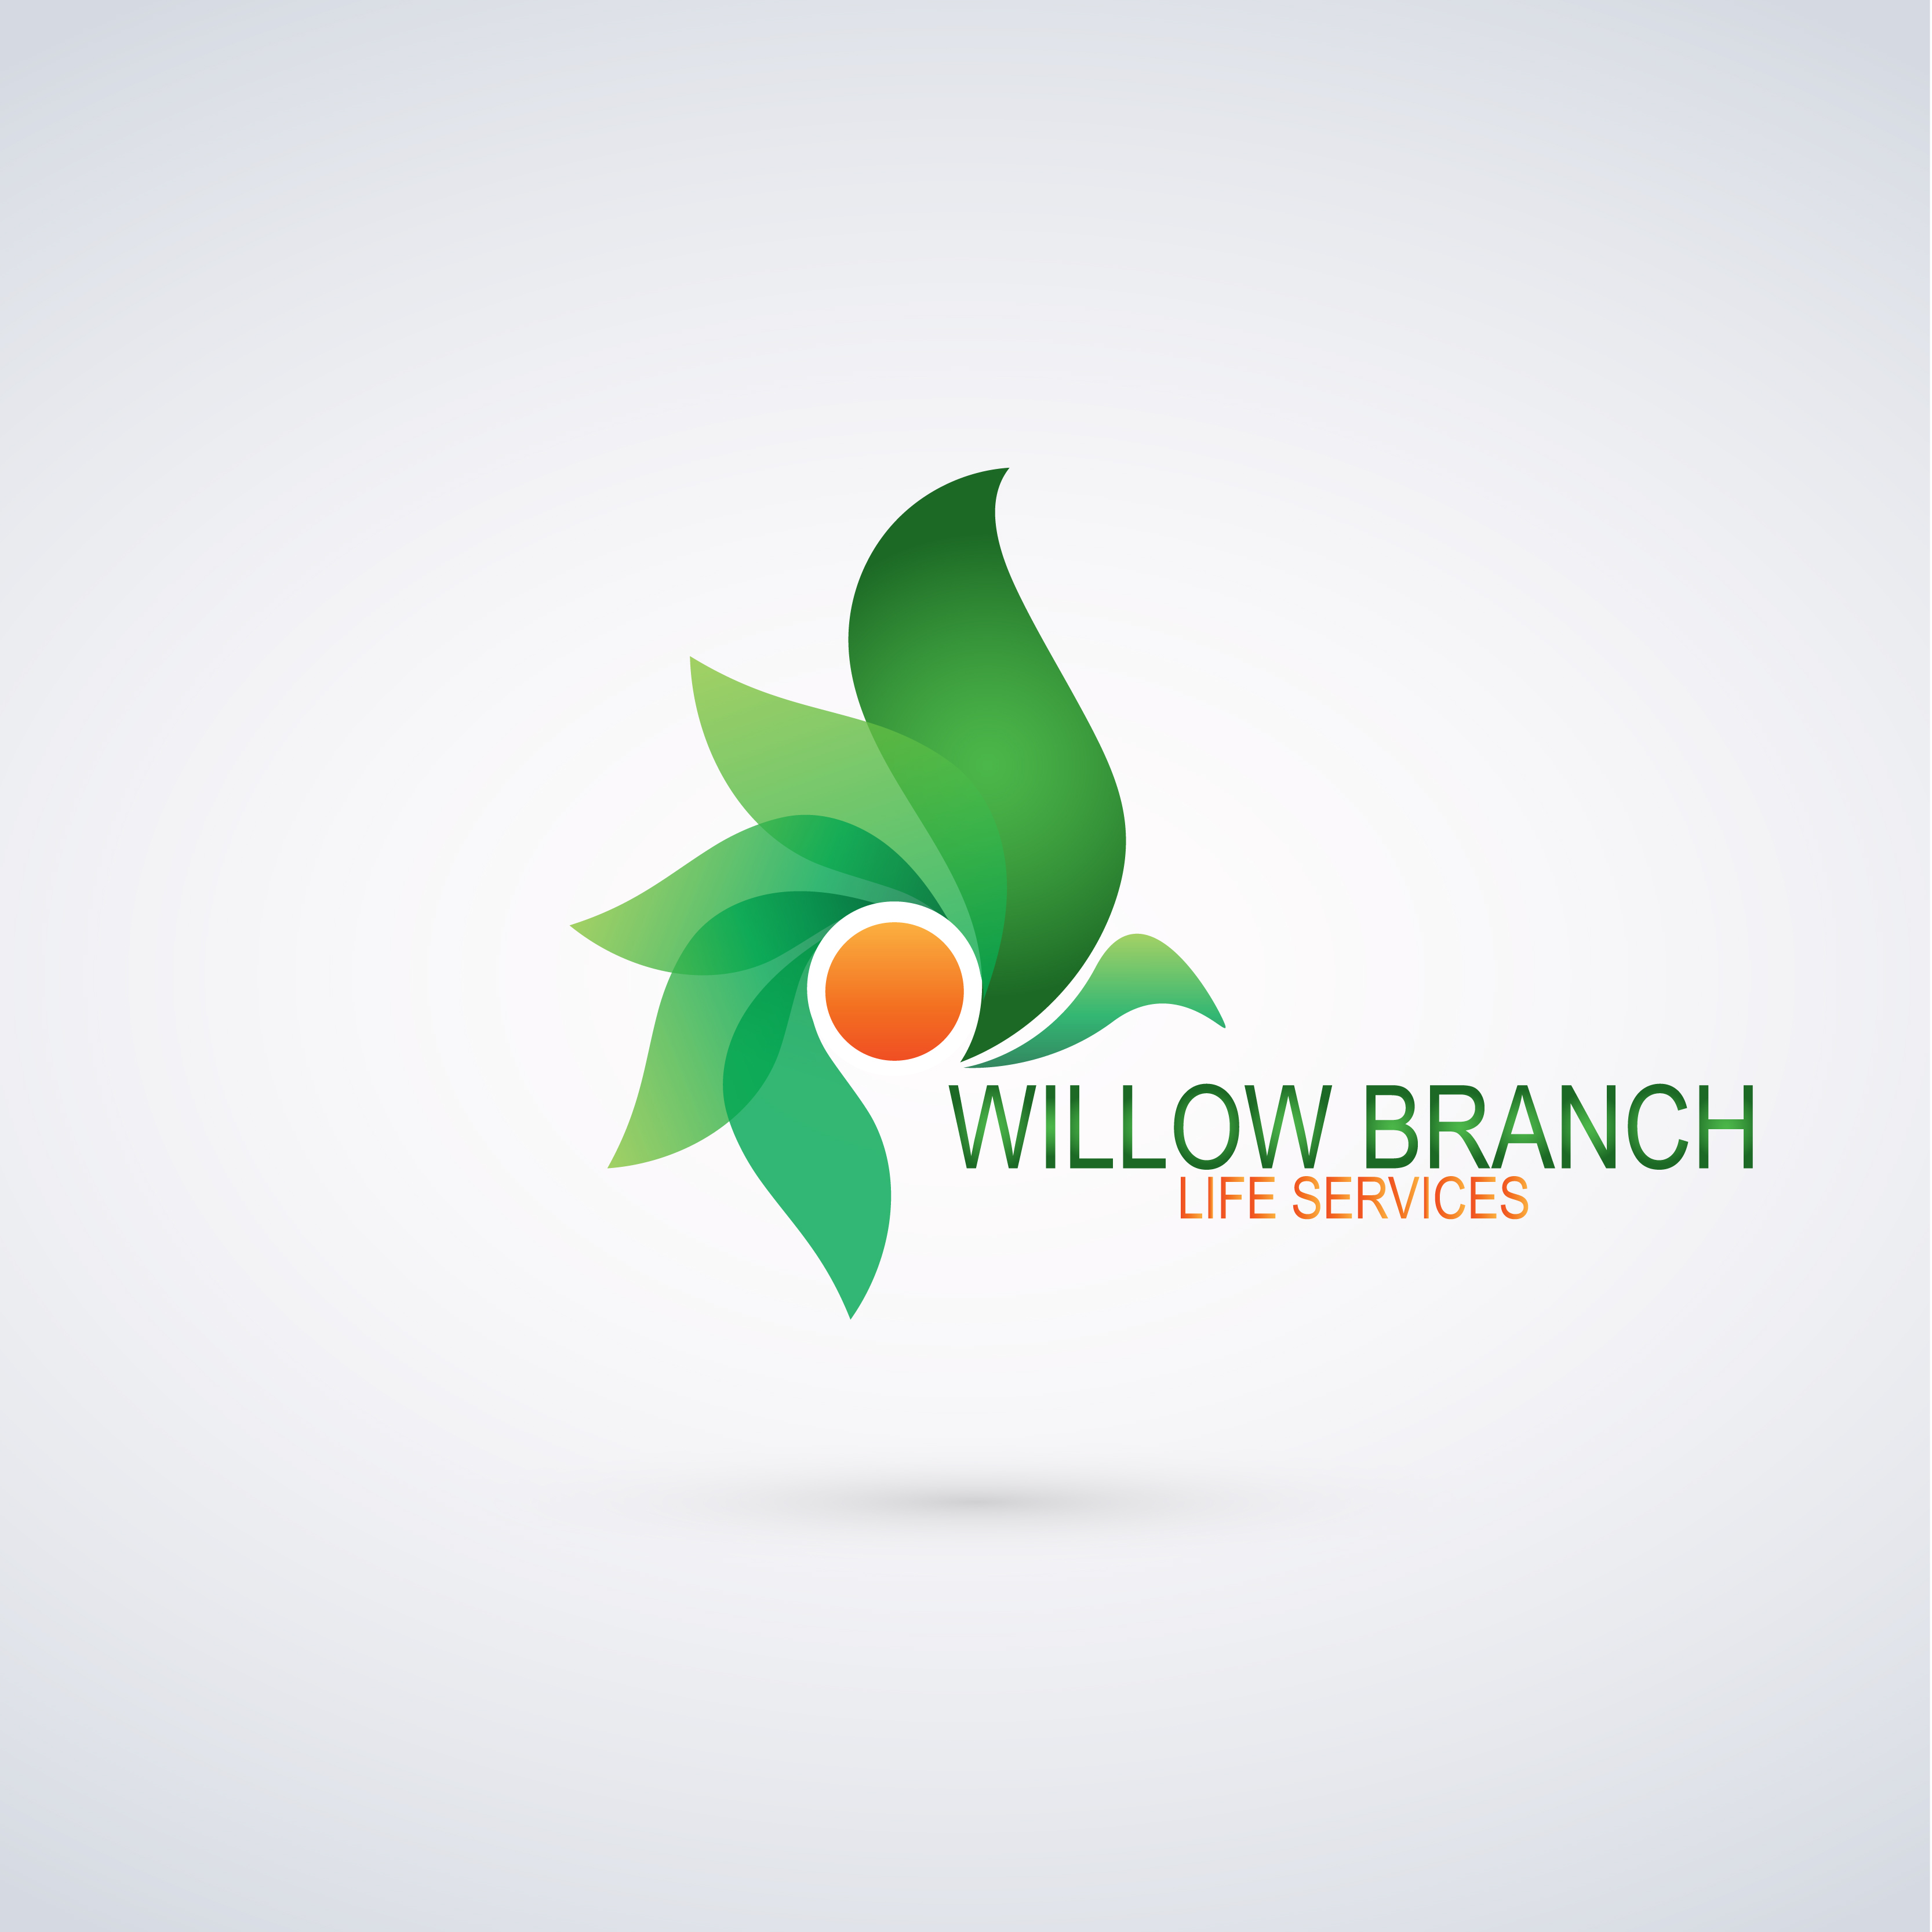 Logo Design by Anum Aamir - Entry No. 199 in the Logo Design Contest Artistic Logo Design for Willow Branch Life Service.